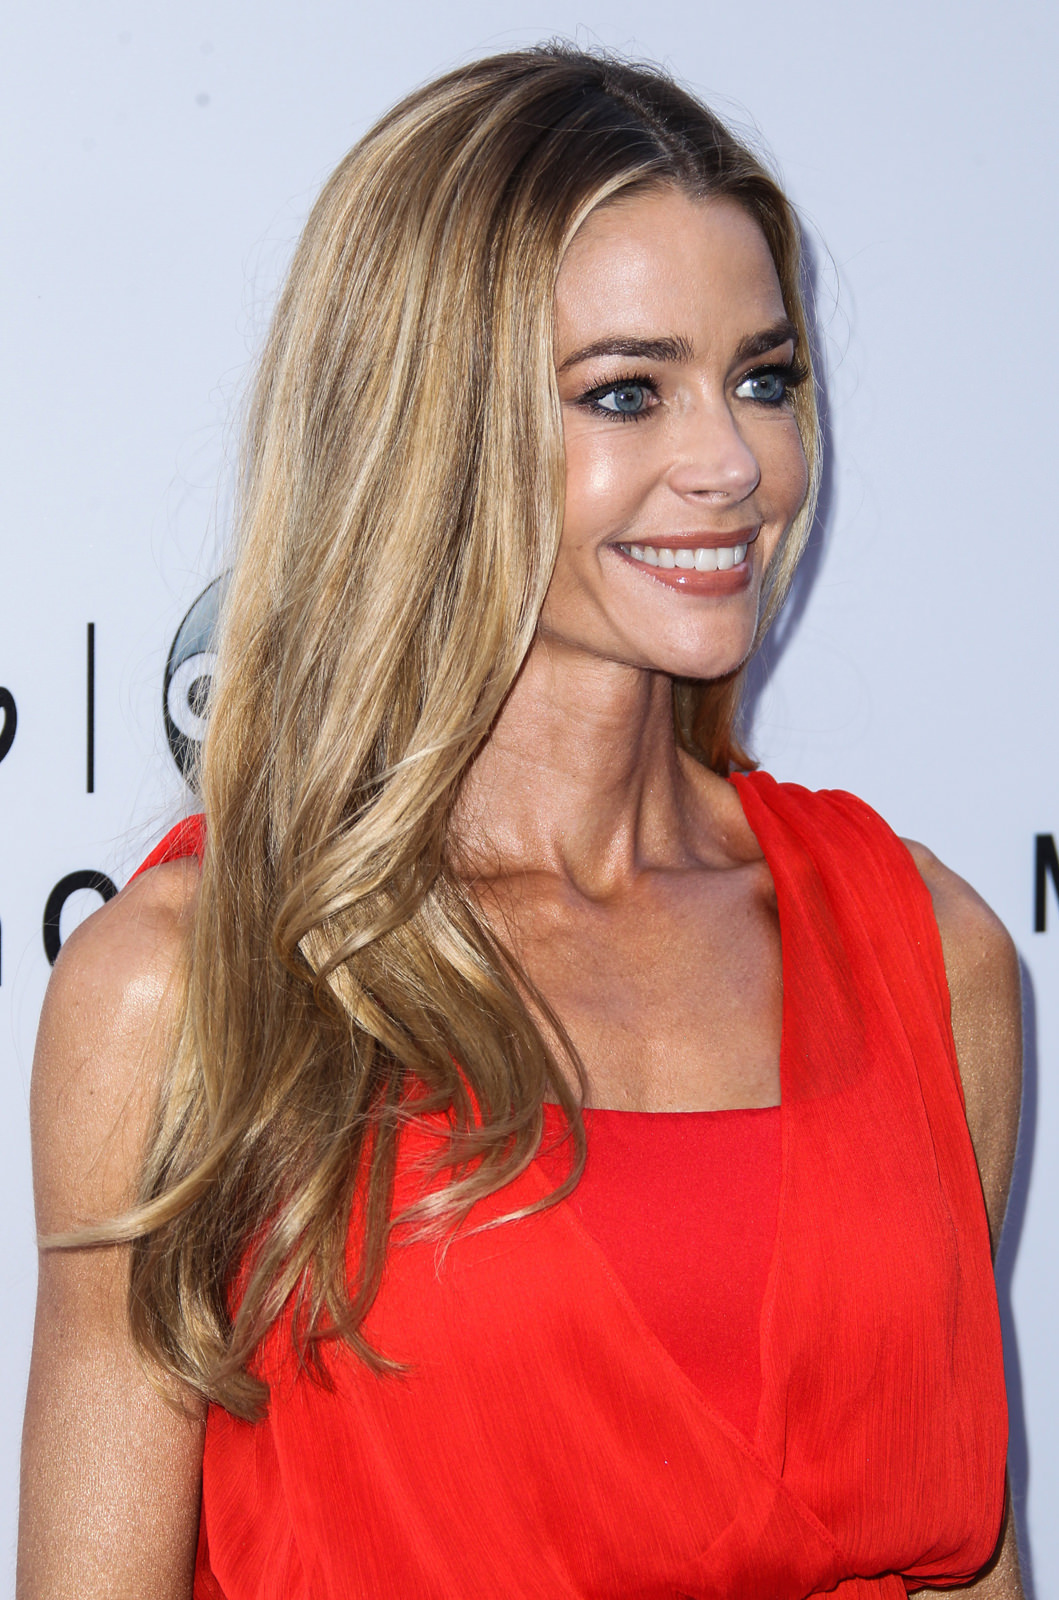 Denise Richards Photo Gallery